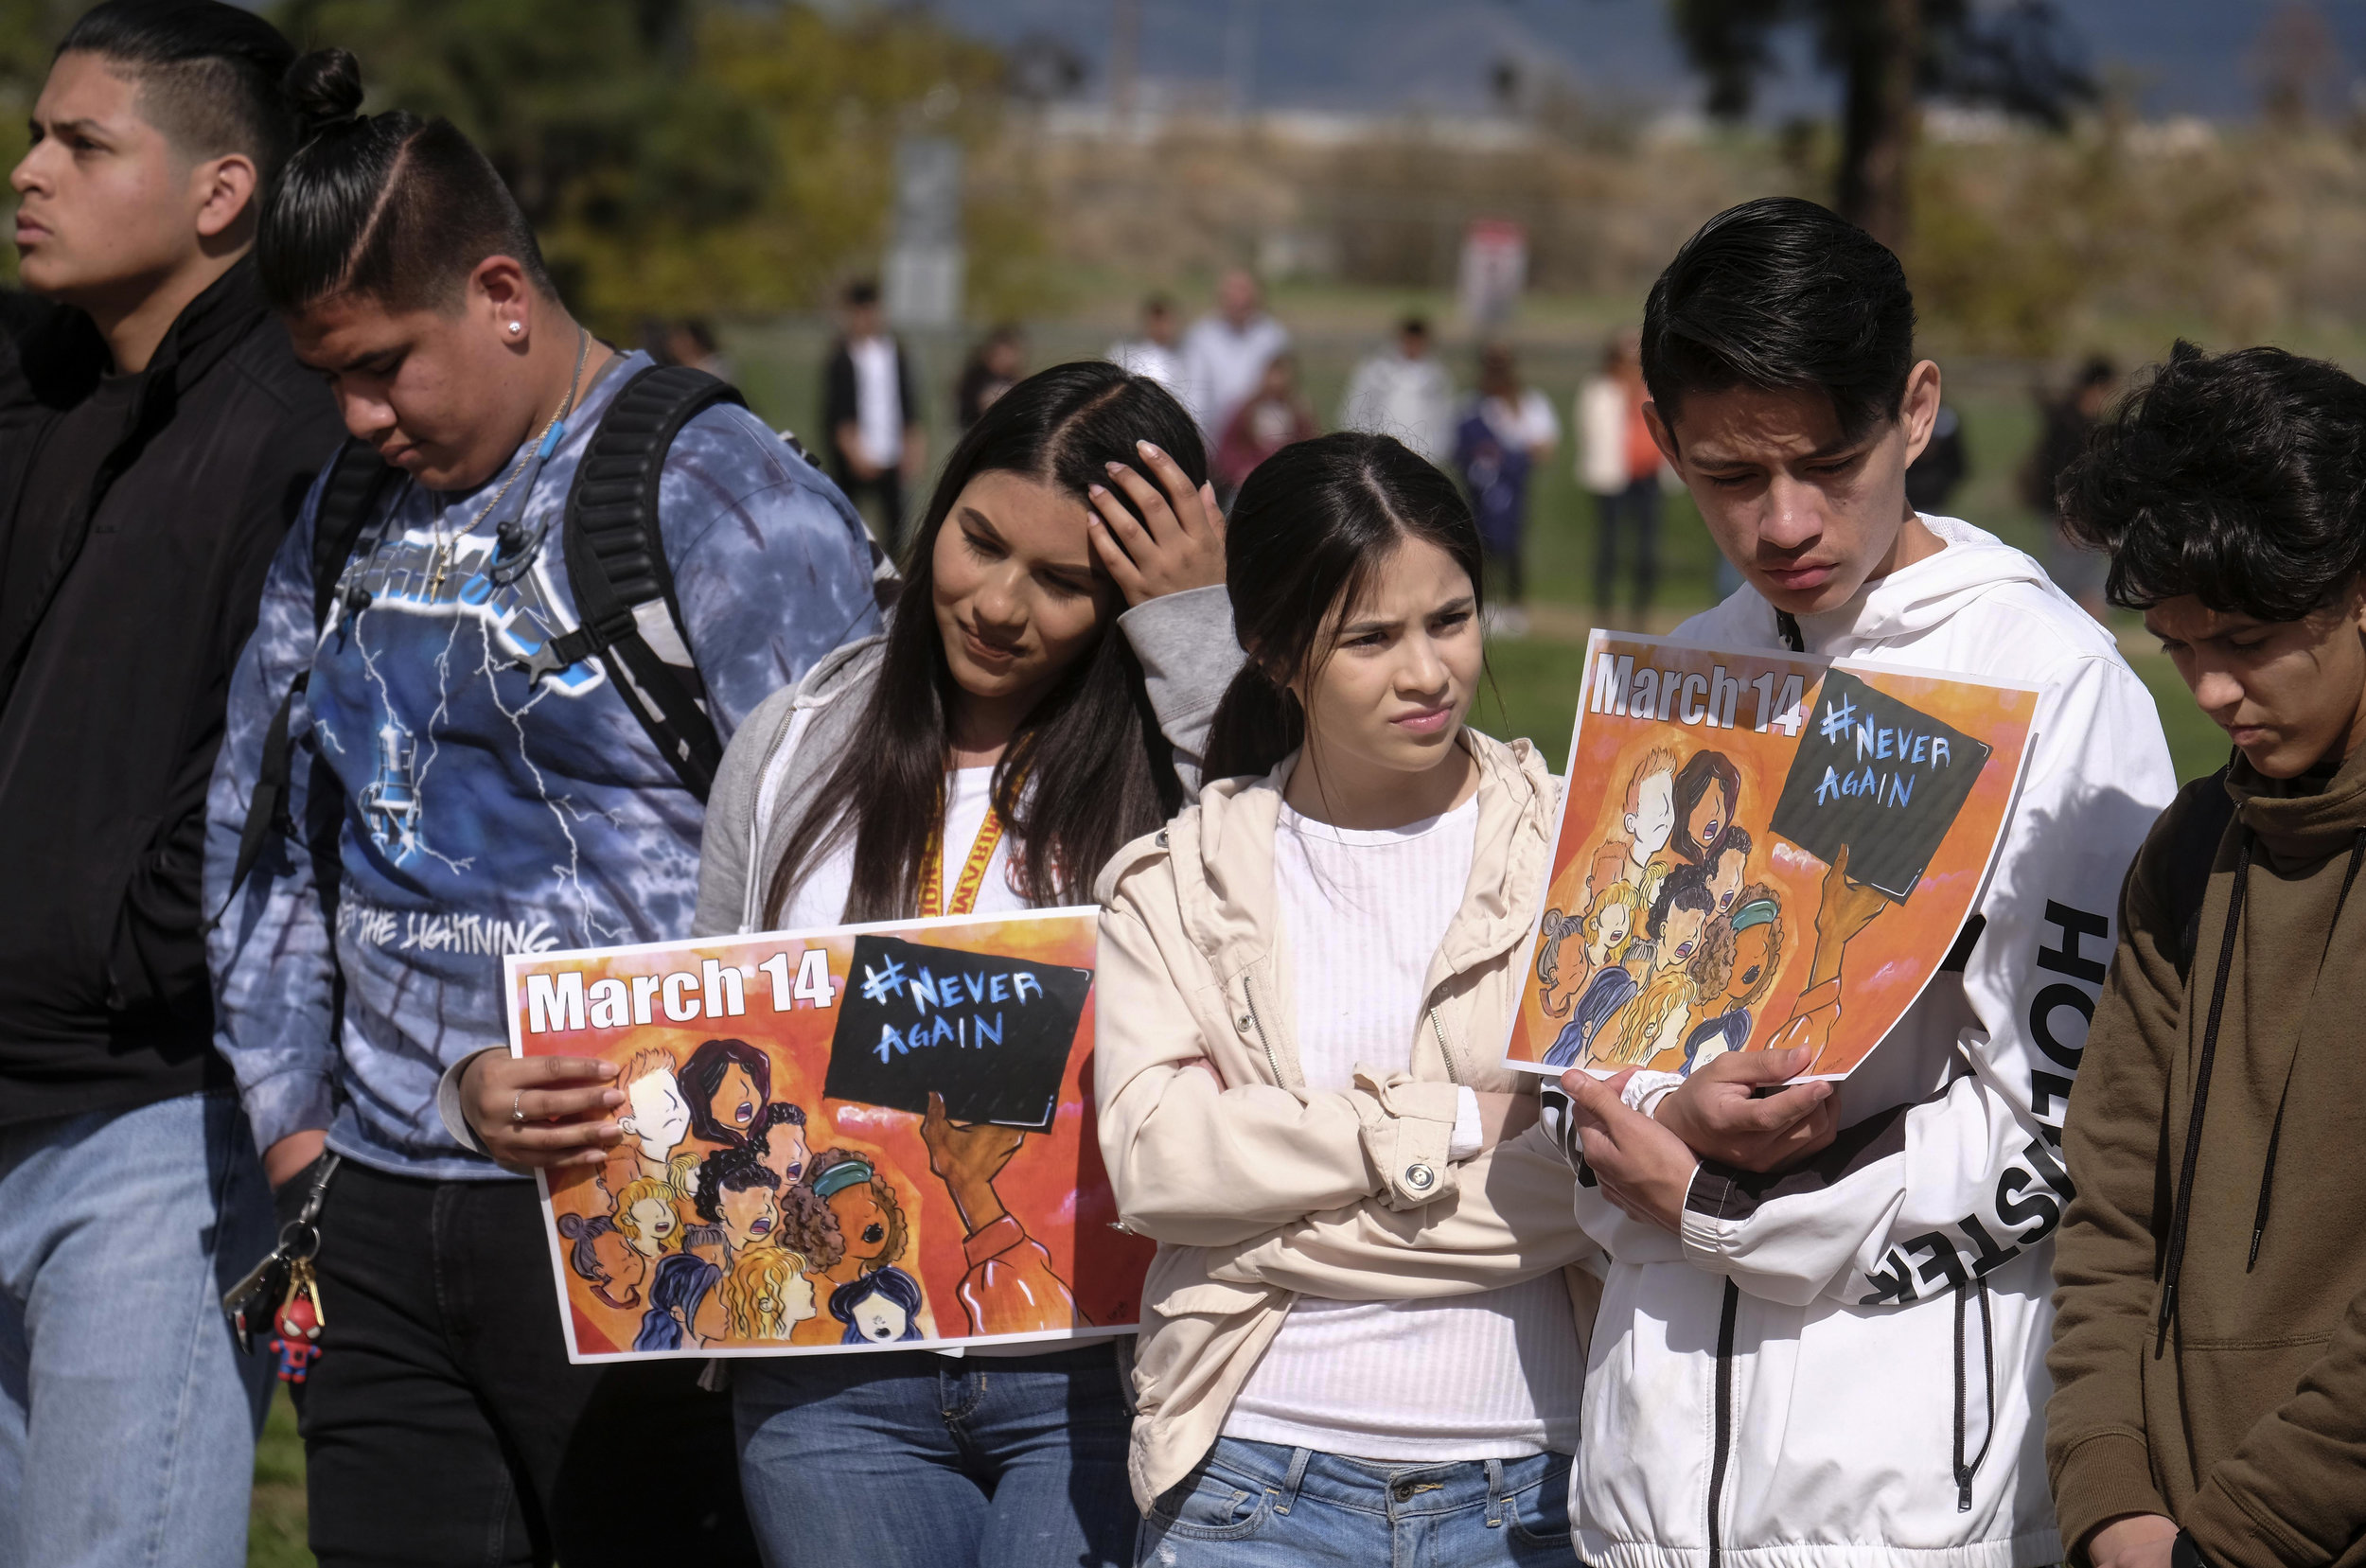 Students from Francis Polytechnic High School hold up signs during ``#NeverAgain,'' an assembly which spotlights the meaning of school safety for students as part of a nationwide protest against gun violence, Wednesday, March 14, 2018, in Los Angeles.